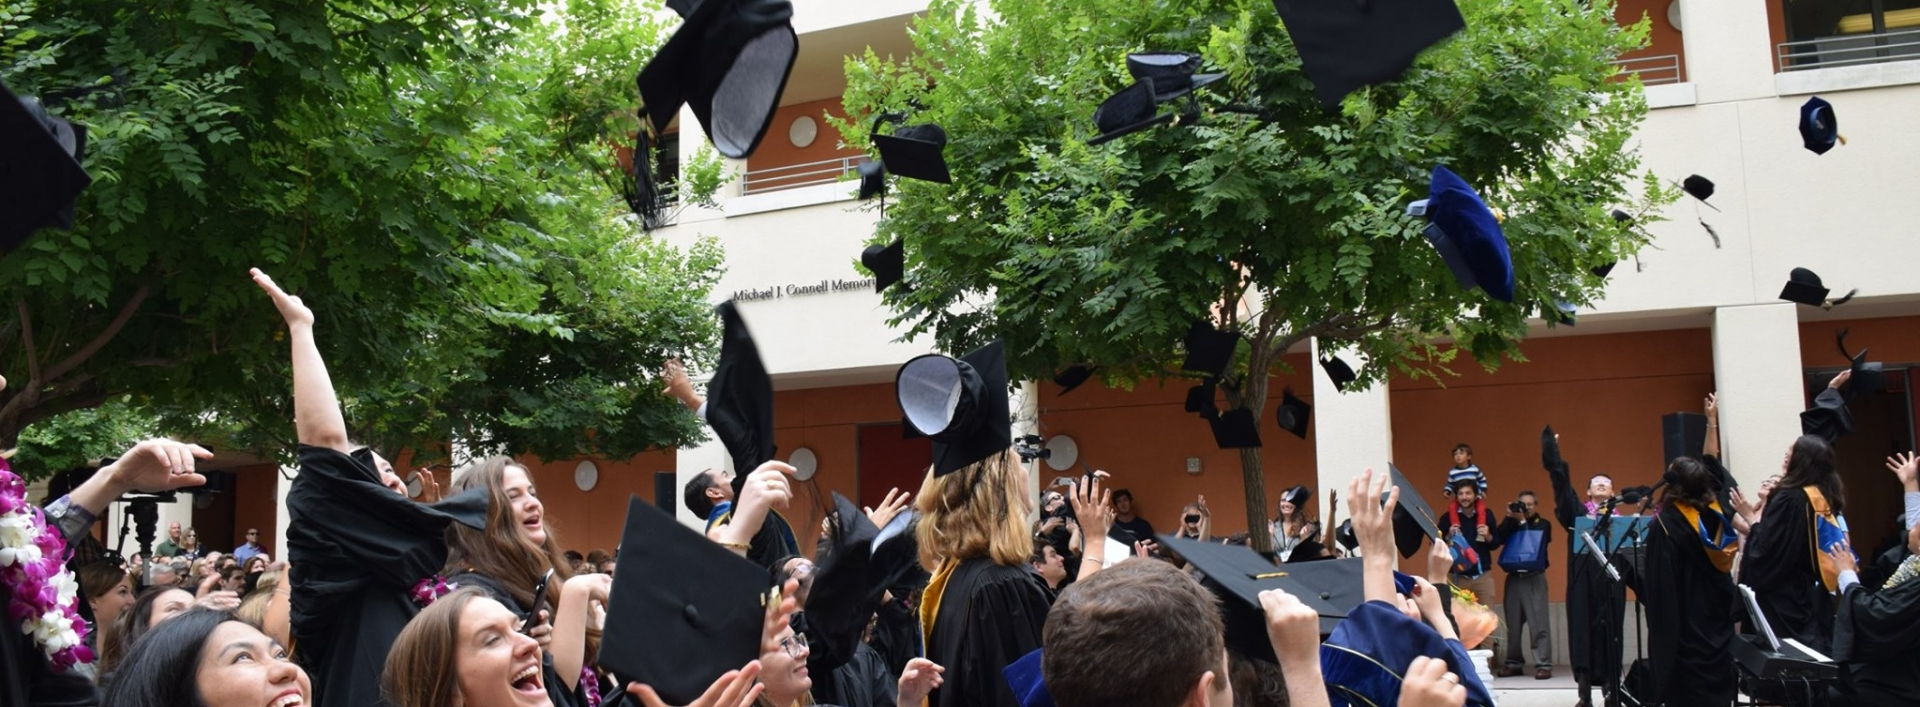 Graduates throwing mortar board caps into the air